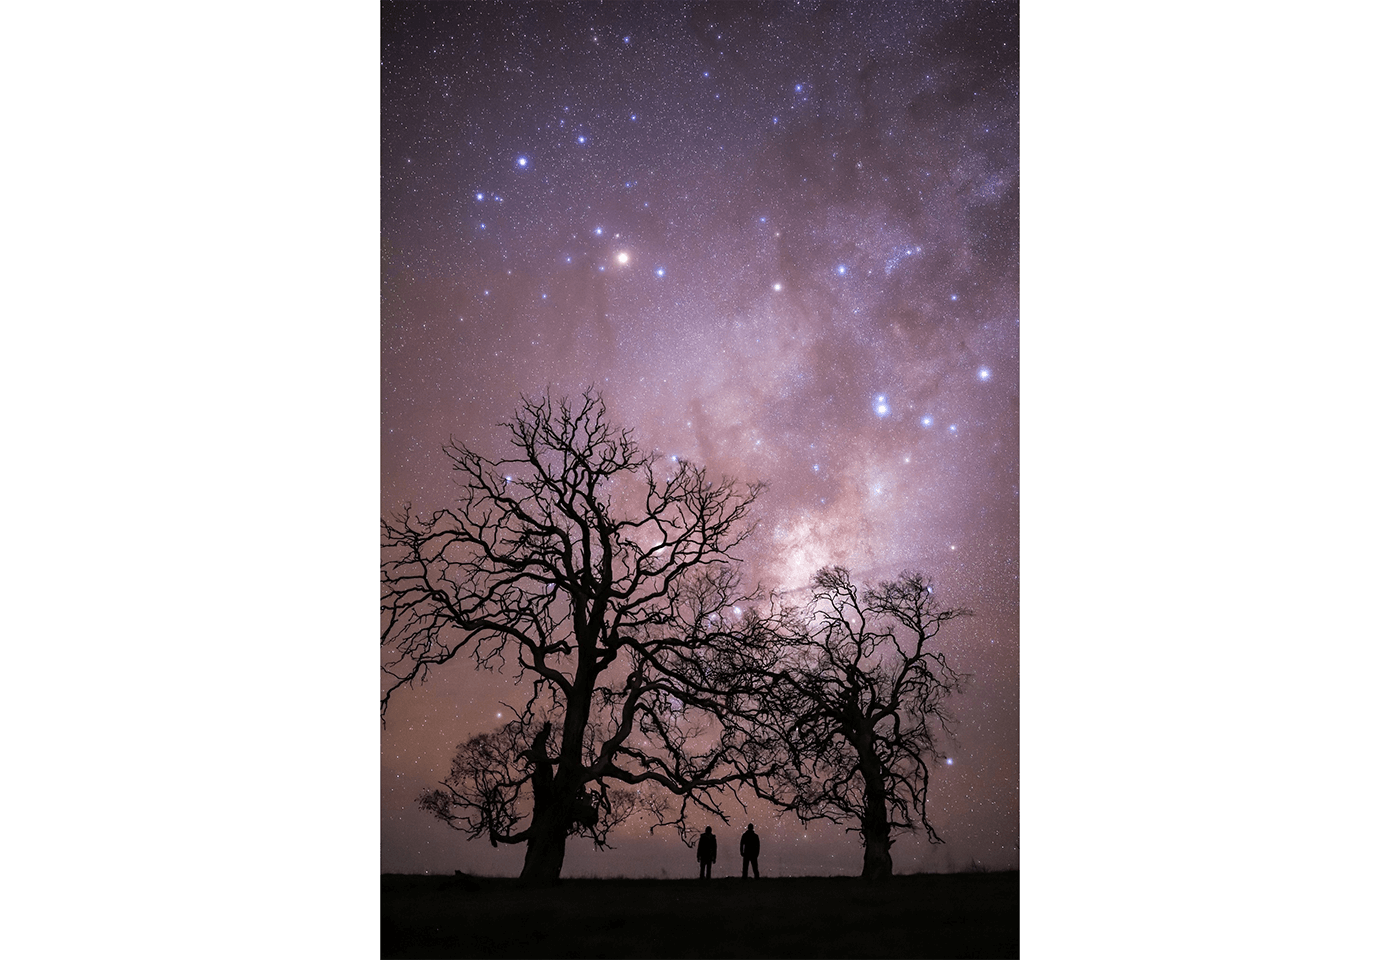 Astrophotography image of stars and sillhouettes of two people between trees - sample photo by Canon EOS 6D Mark II